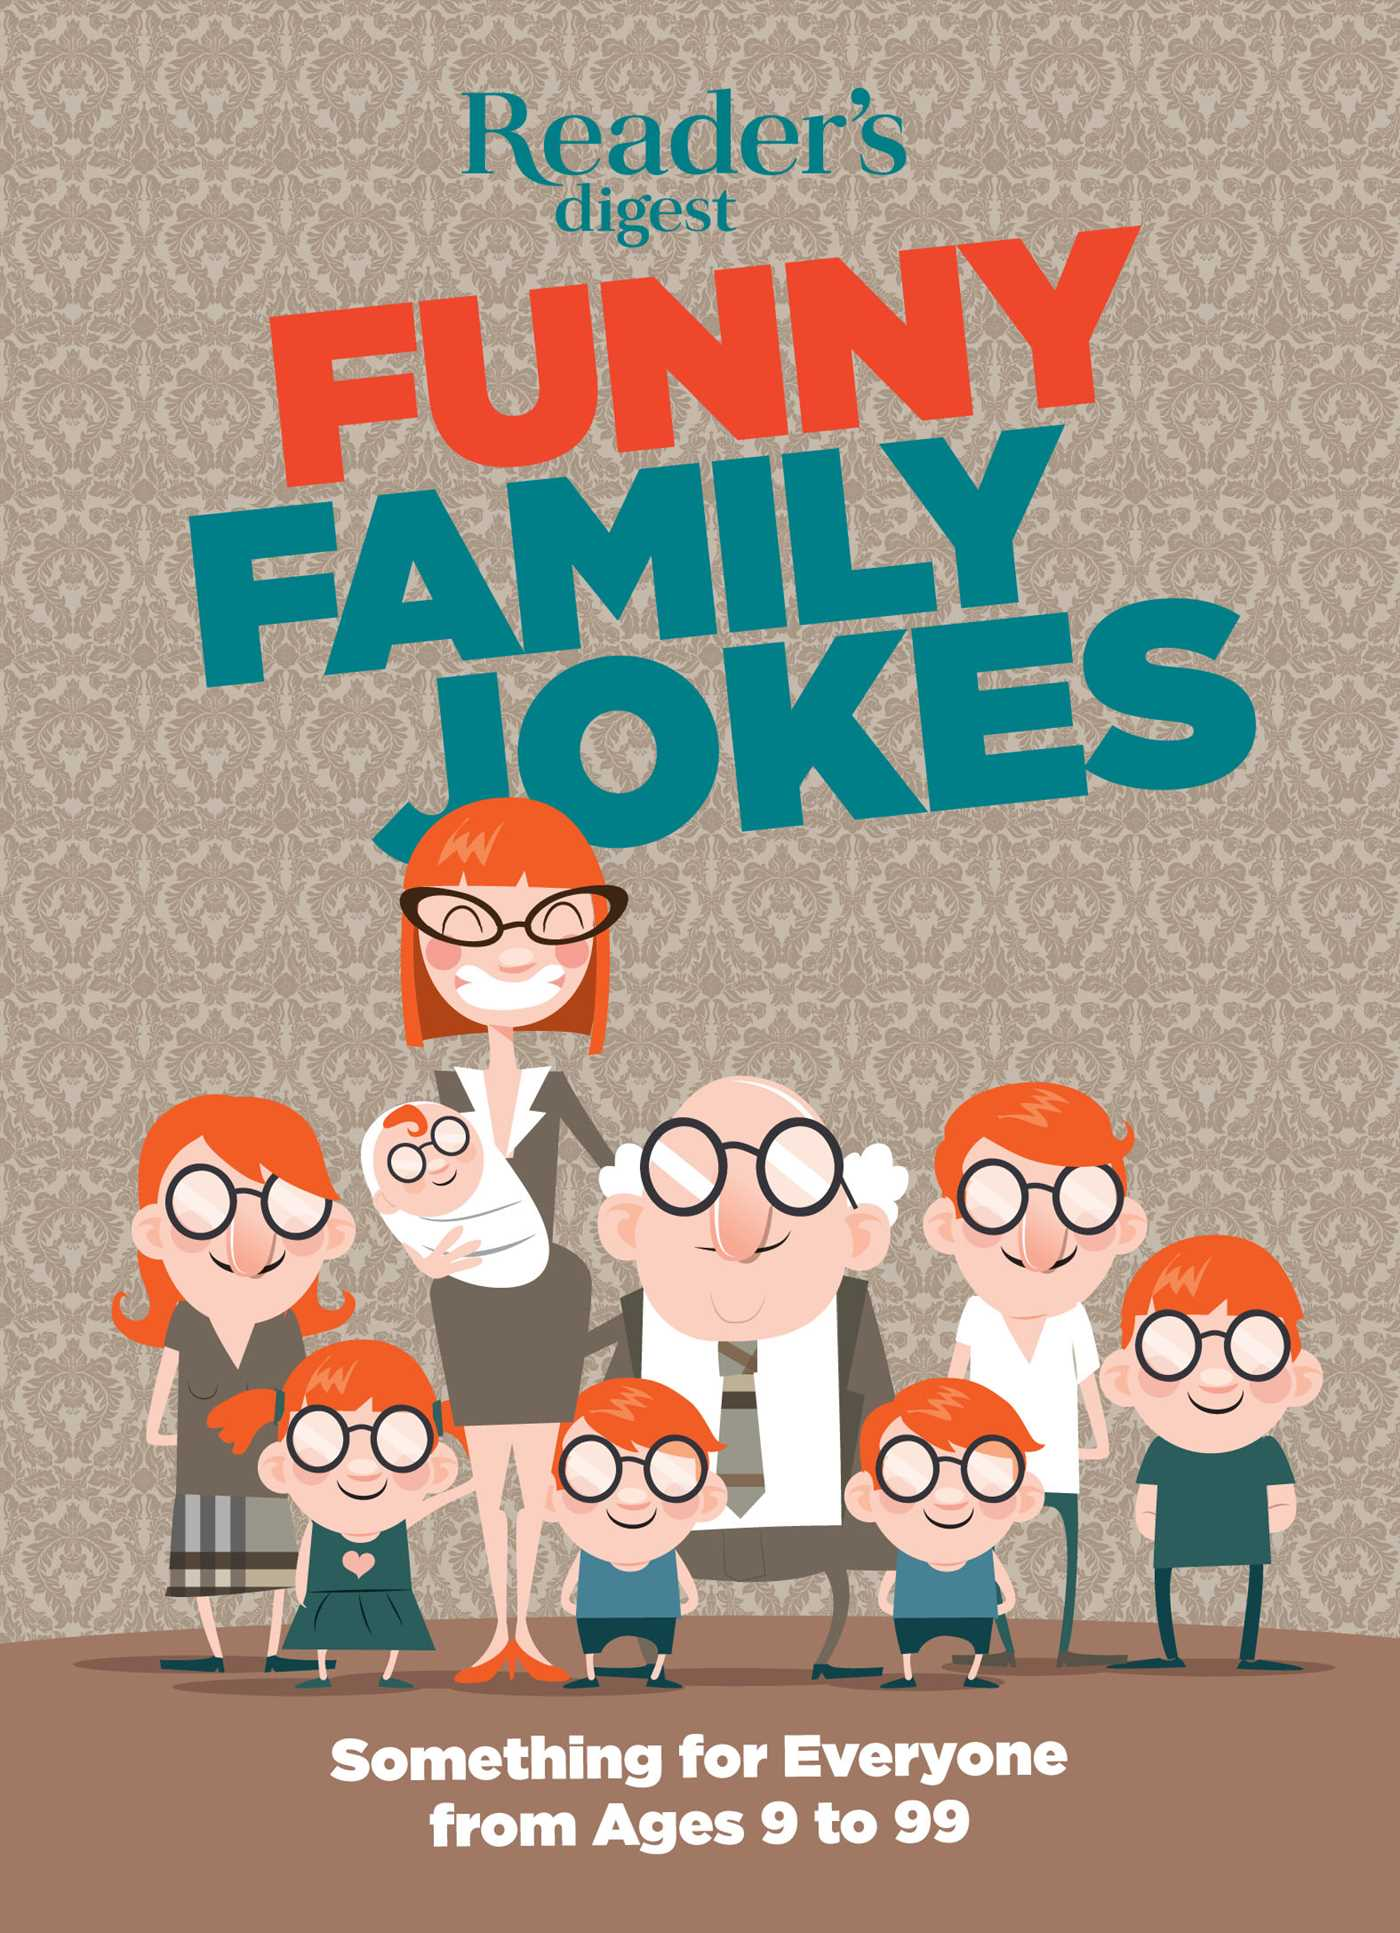 Readers Digest Funny Family Jokes eBook by Editors at Reader's